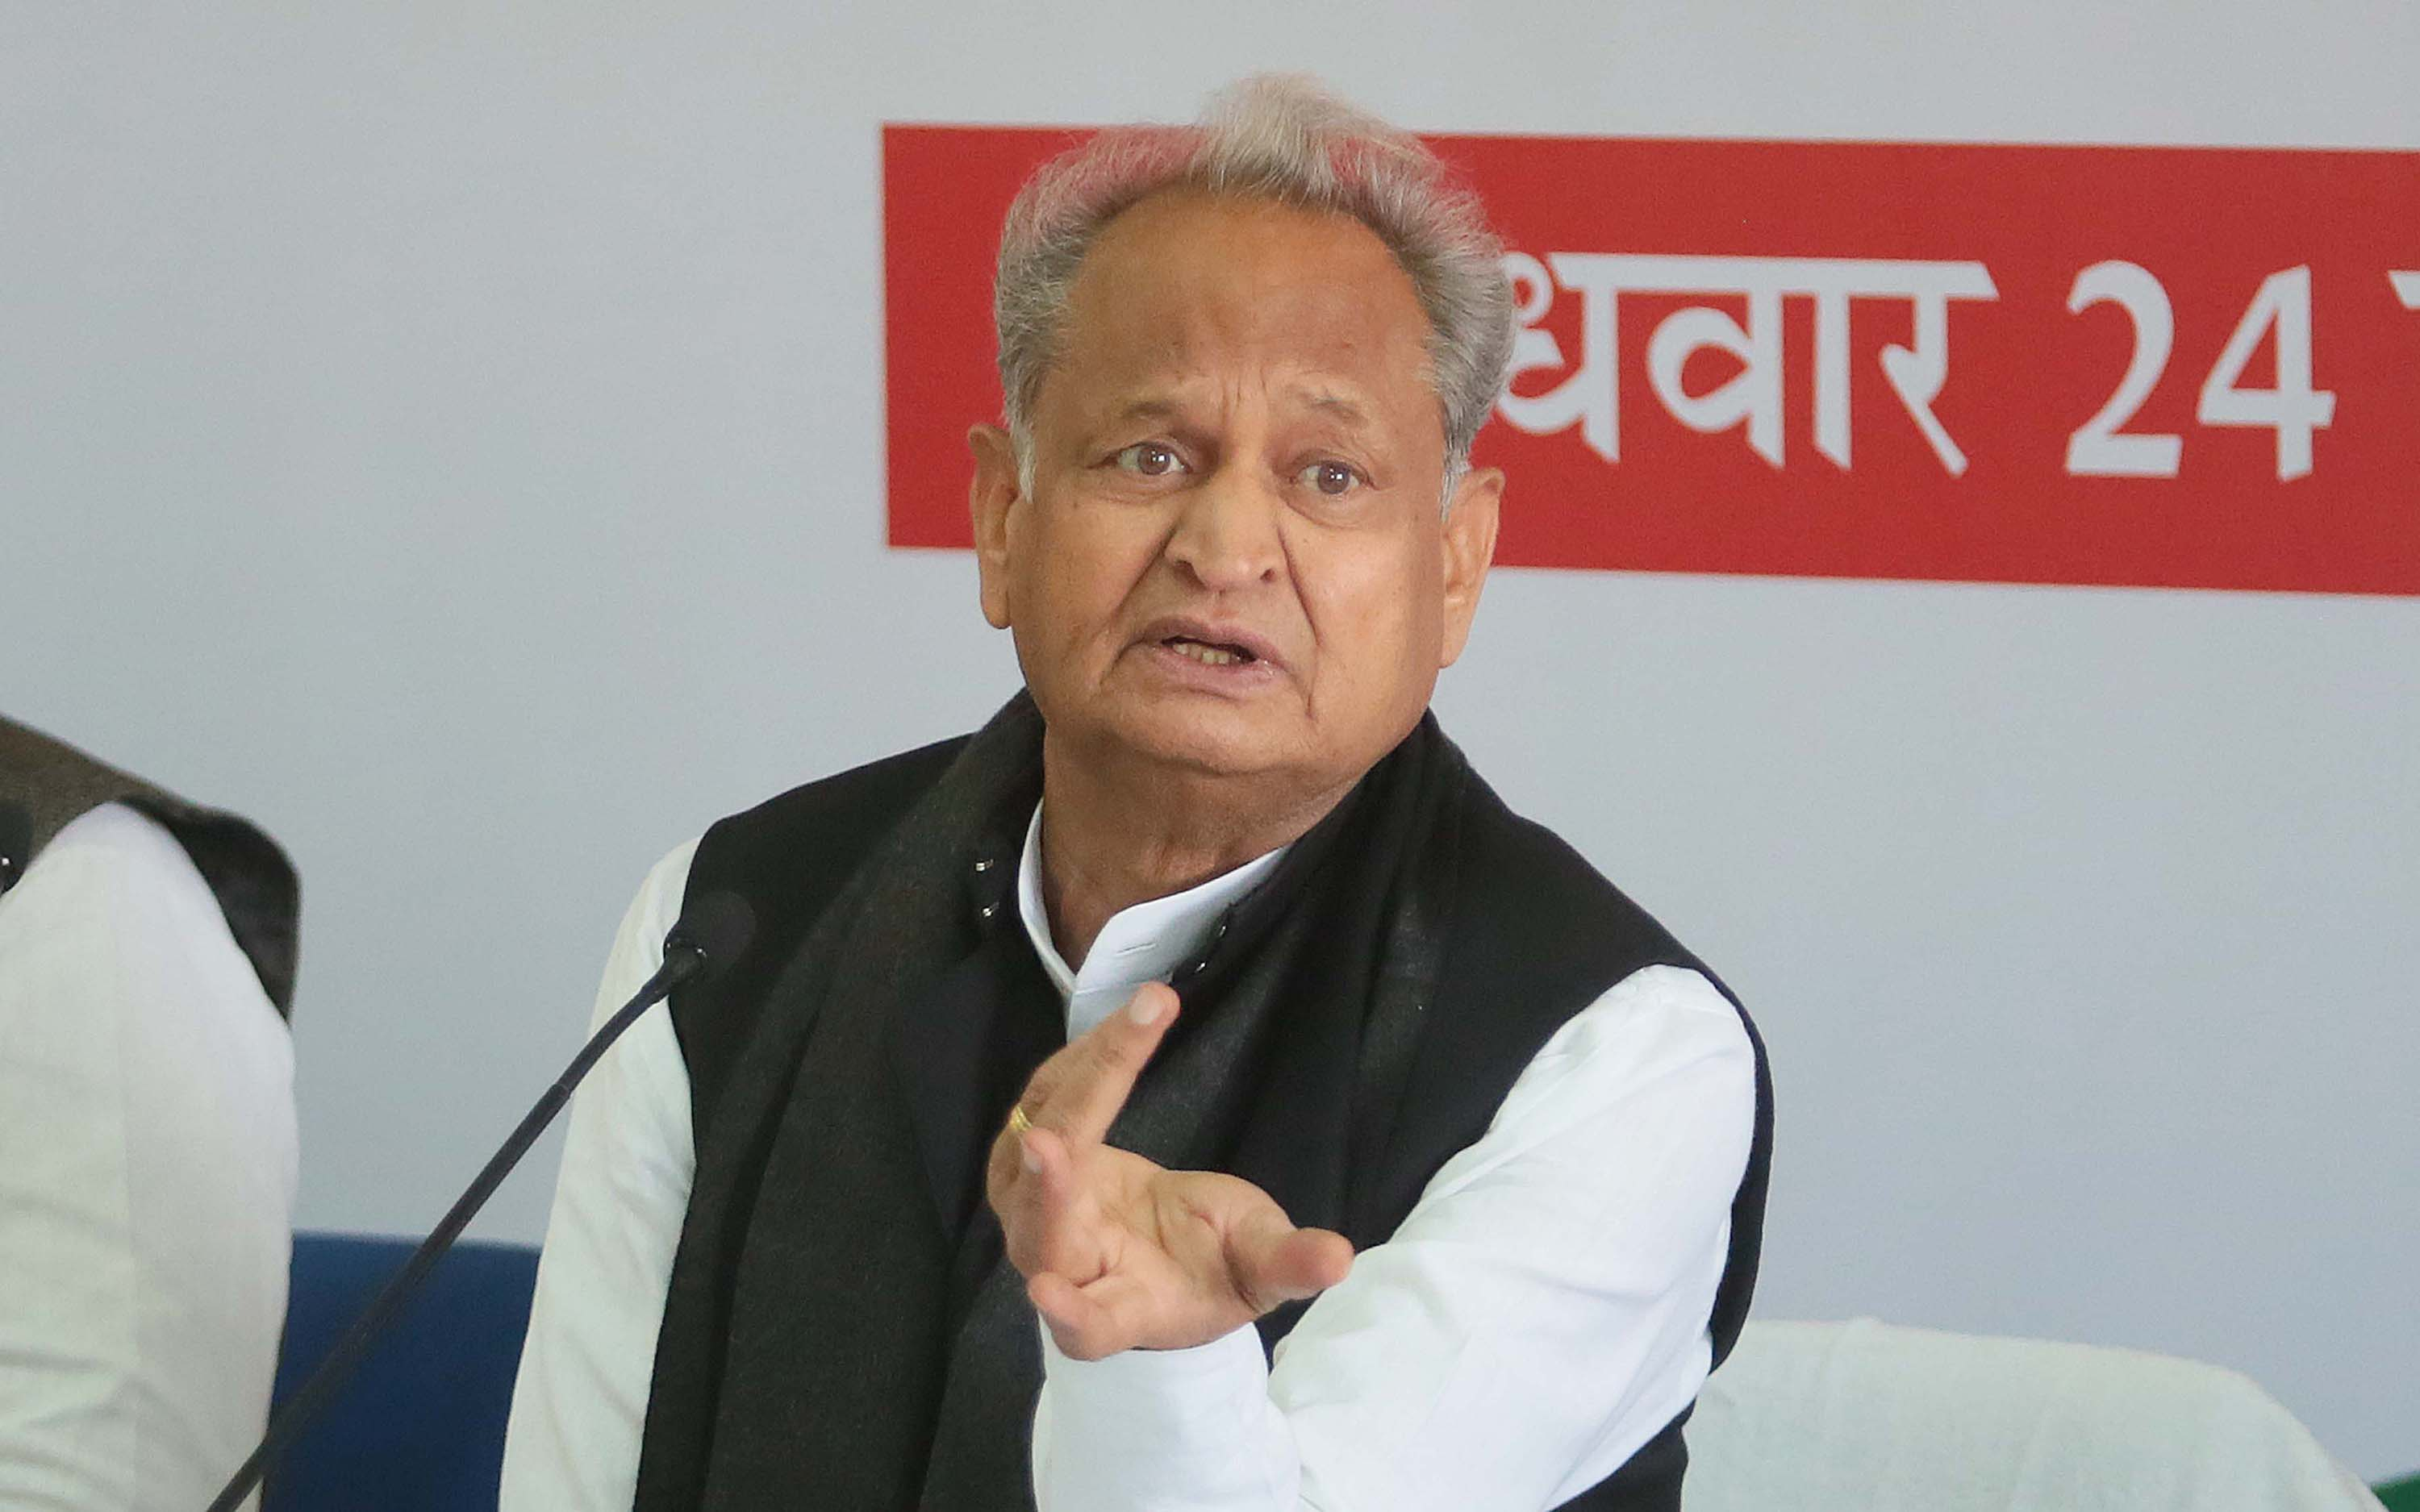 Rajasthan Chief Minister Ashok Gehlot is pictured addressing the media in Jaipur, India, on February 24.